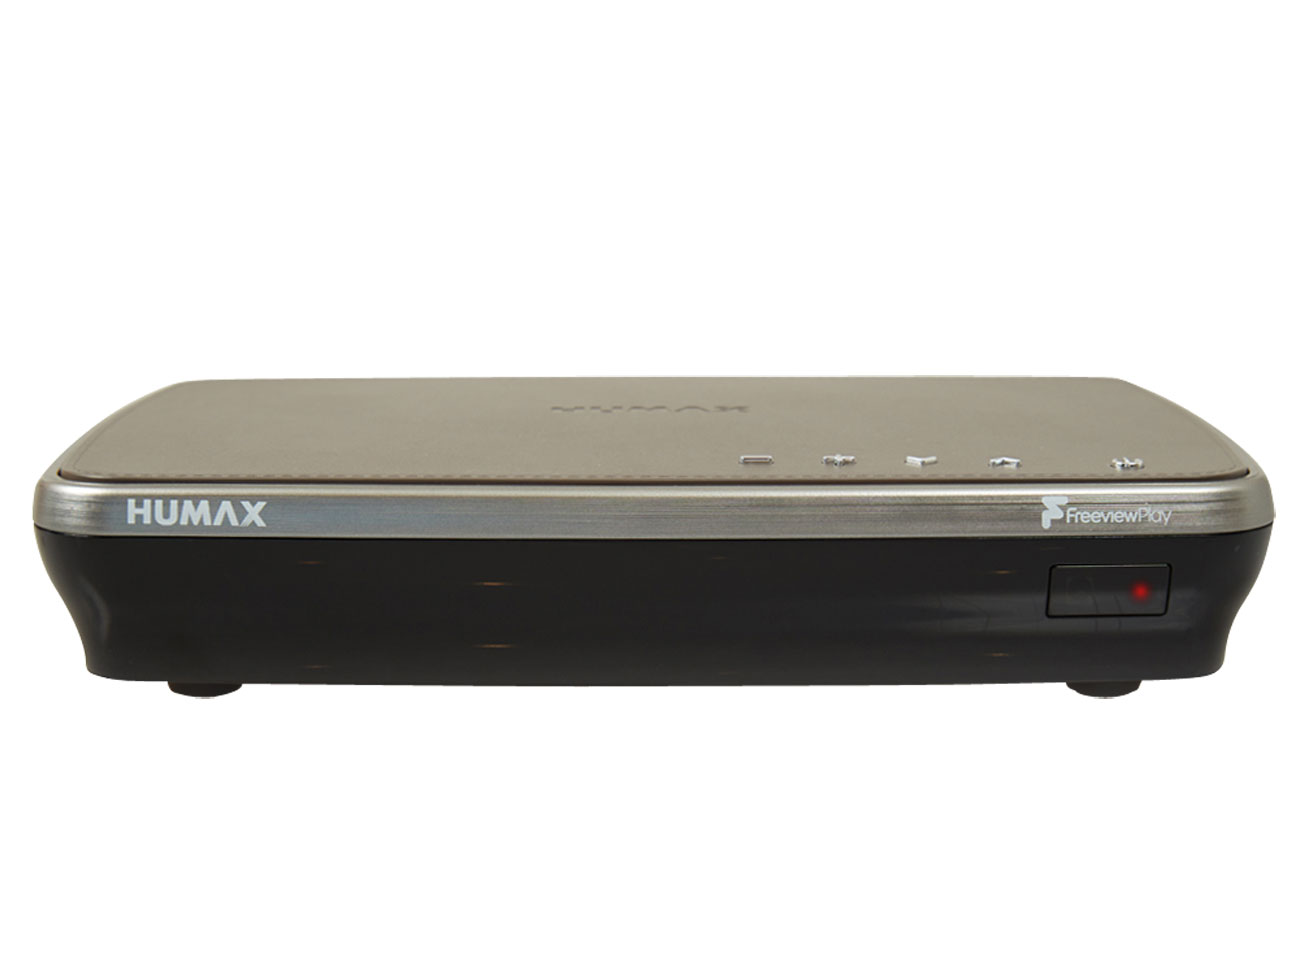 Humax FVP4000T 1TB Freeview Play HD Digital TV Recorder